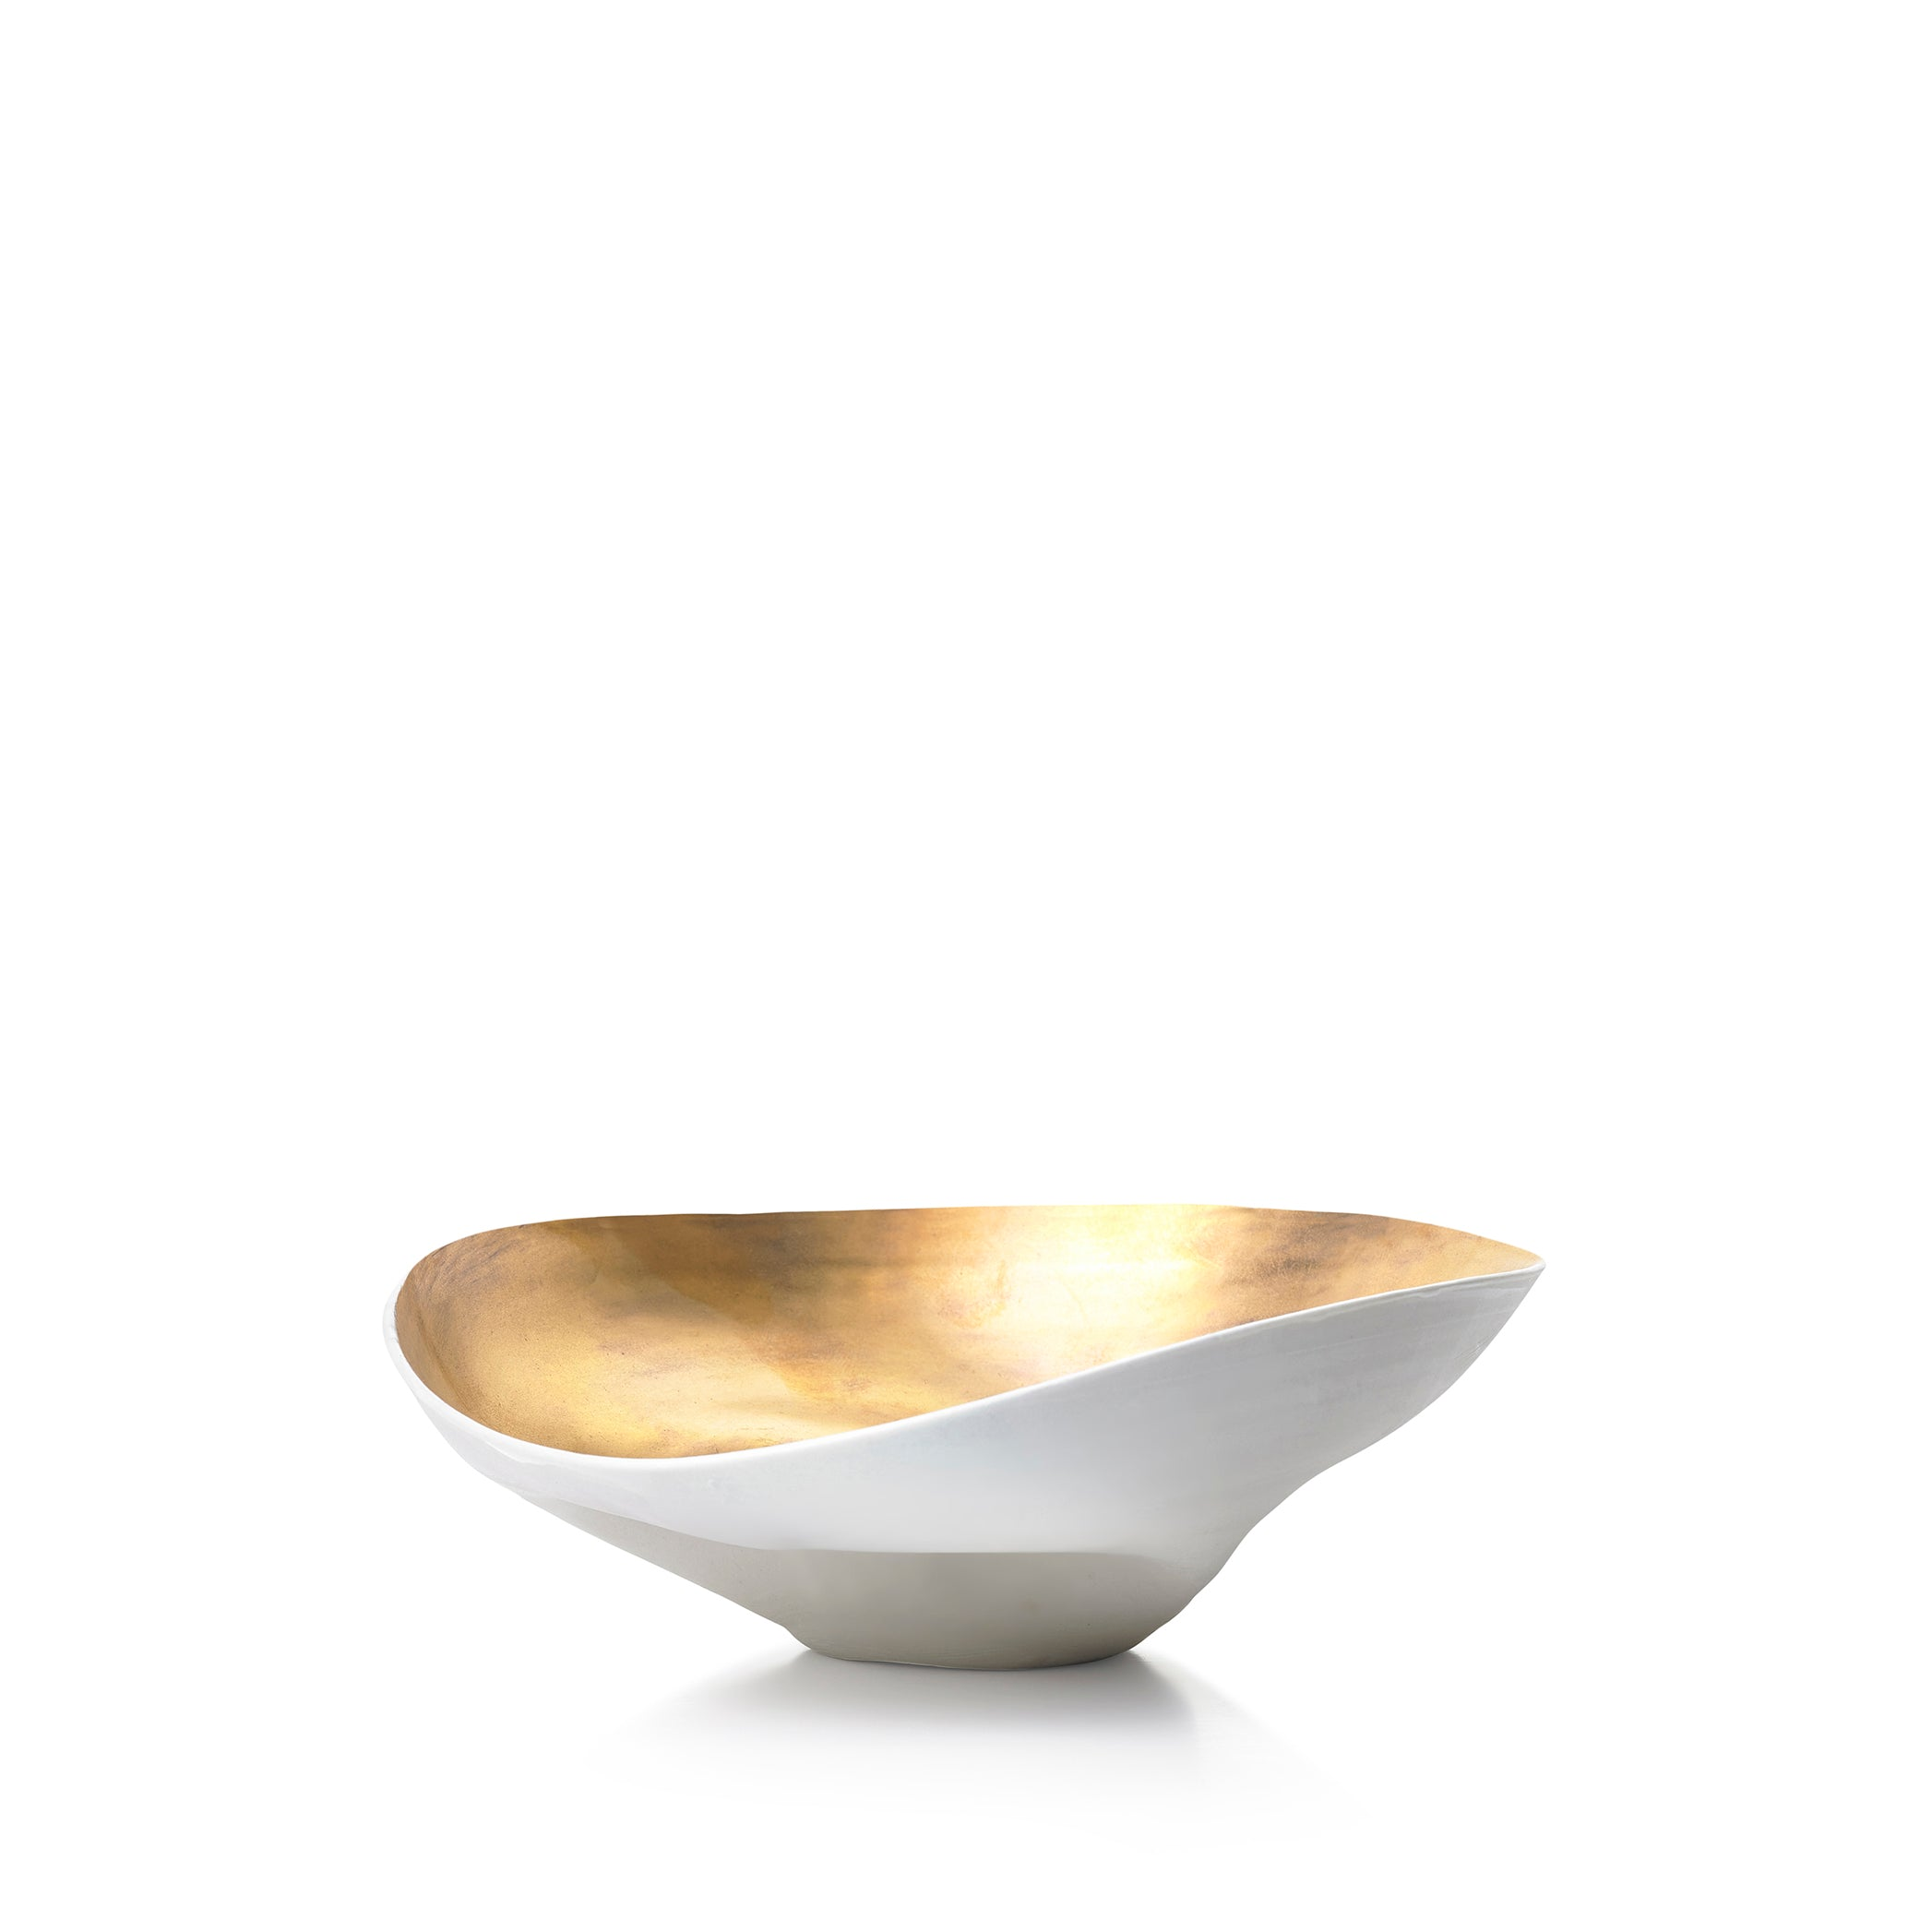 Medium Porcelain Shell Bowl in Gold, 18cm